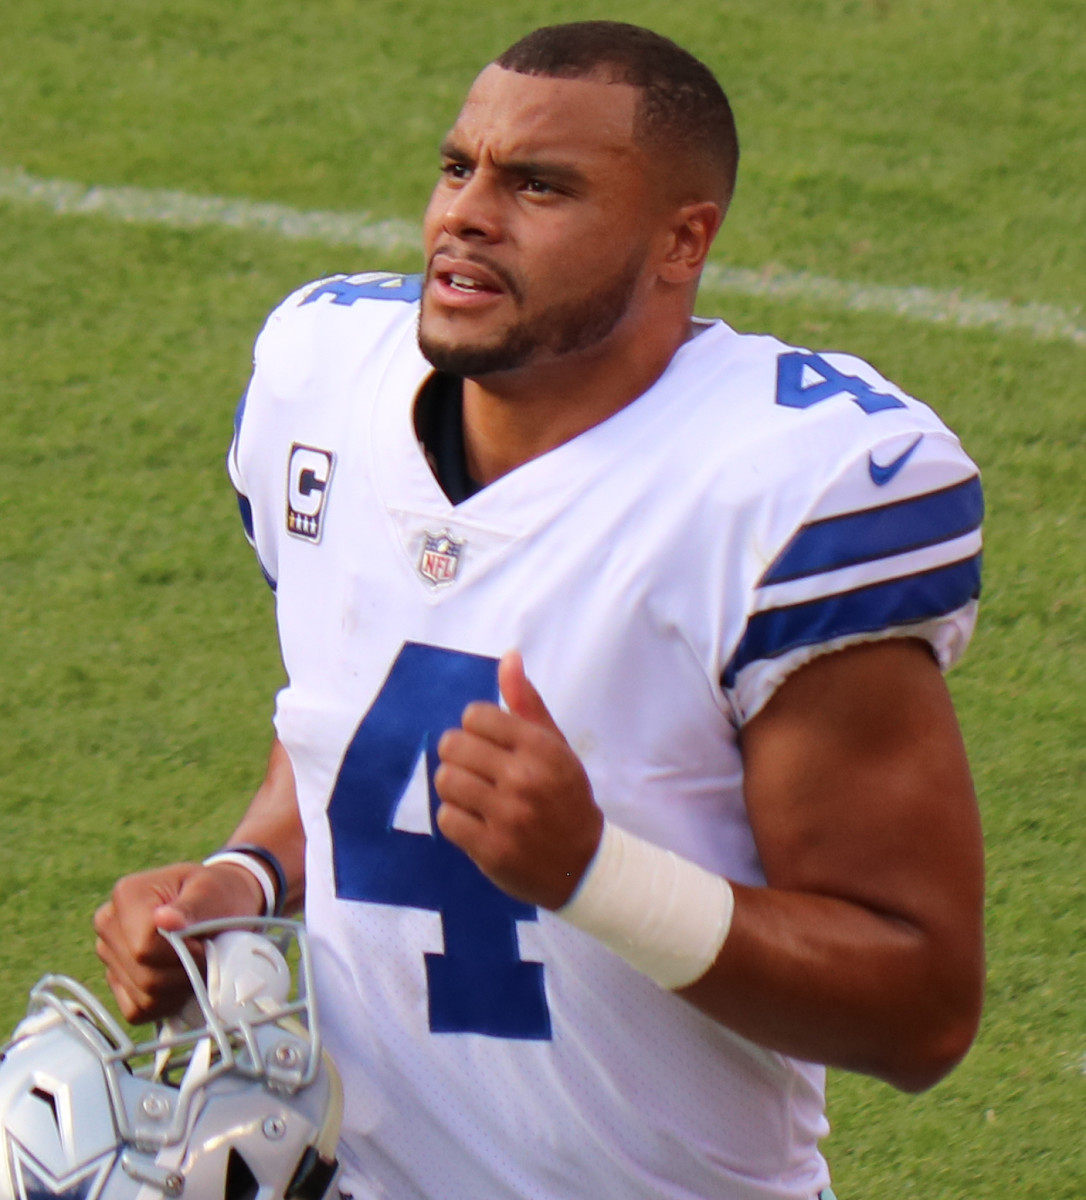 Dak will head into the most important offseason in his life after suffering a major leg injury.